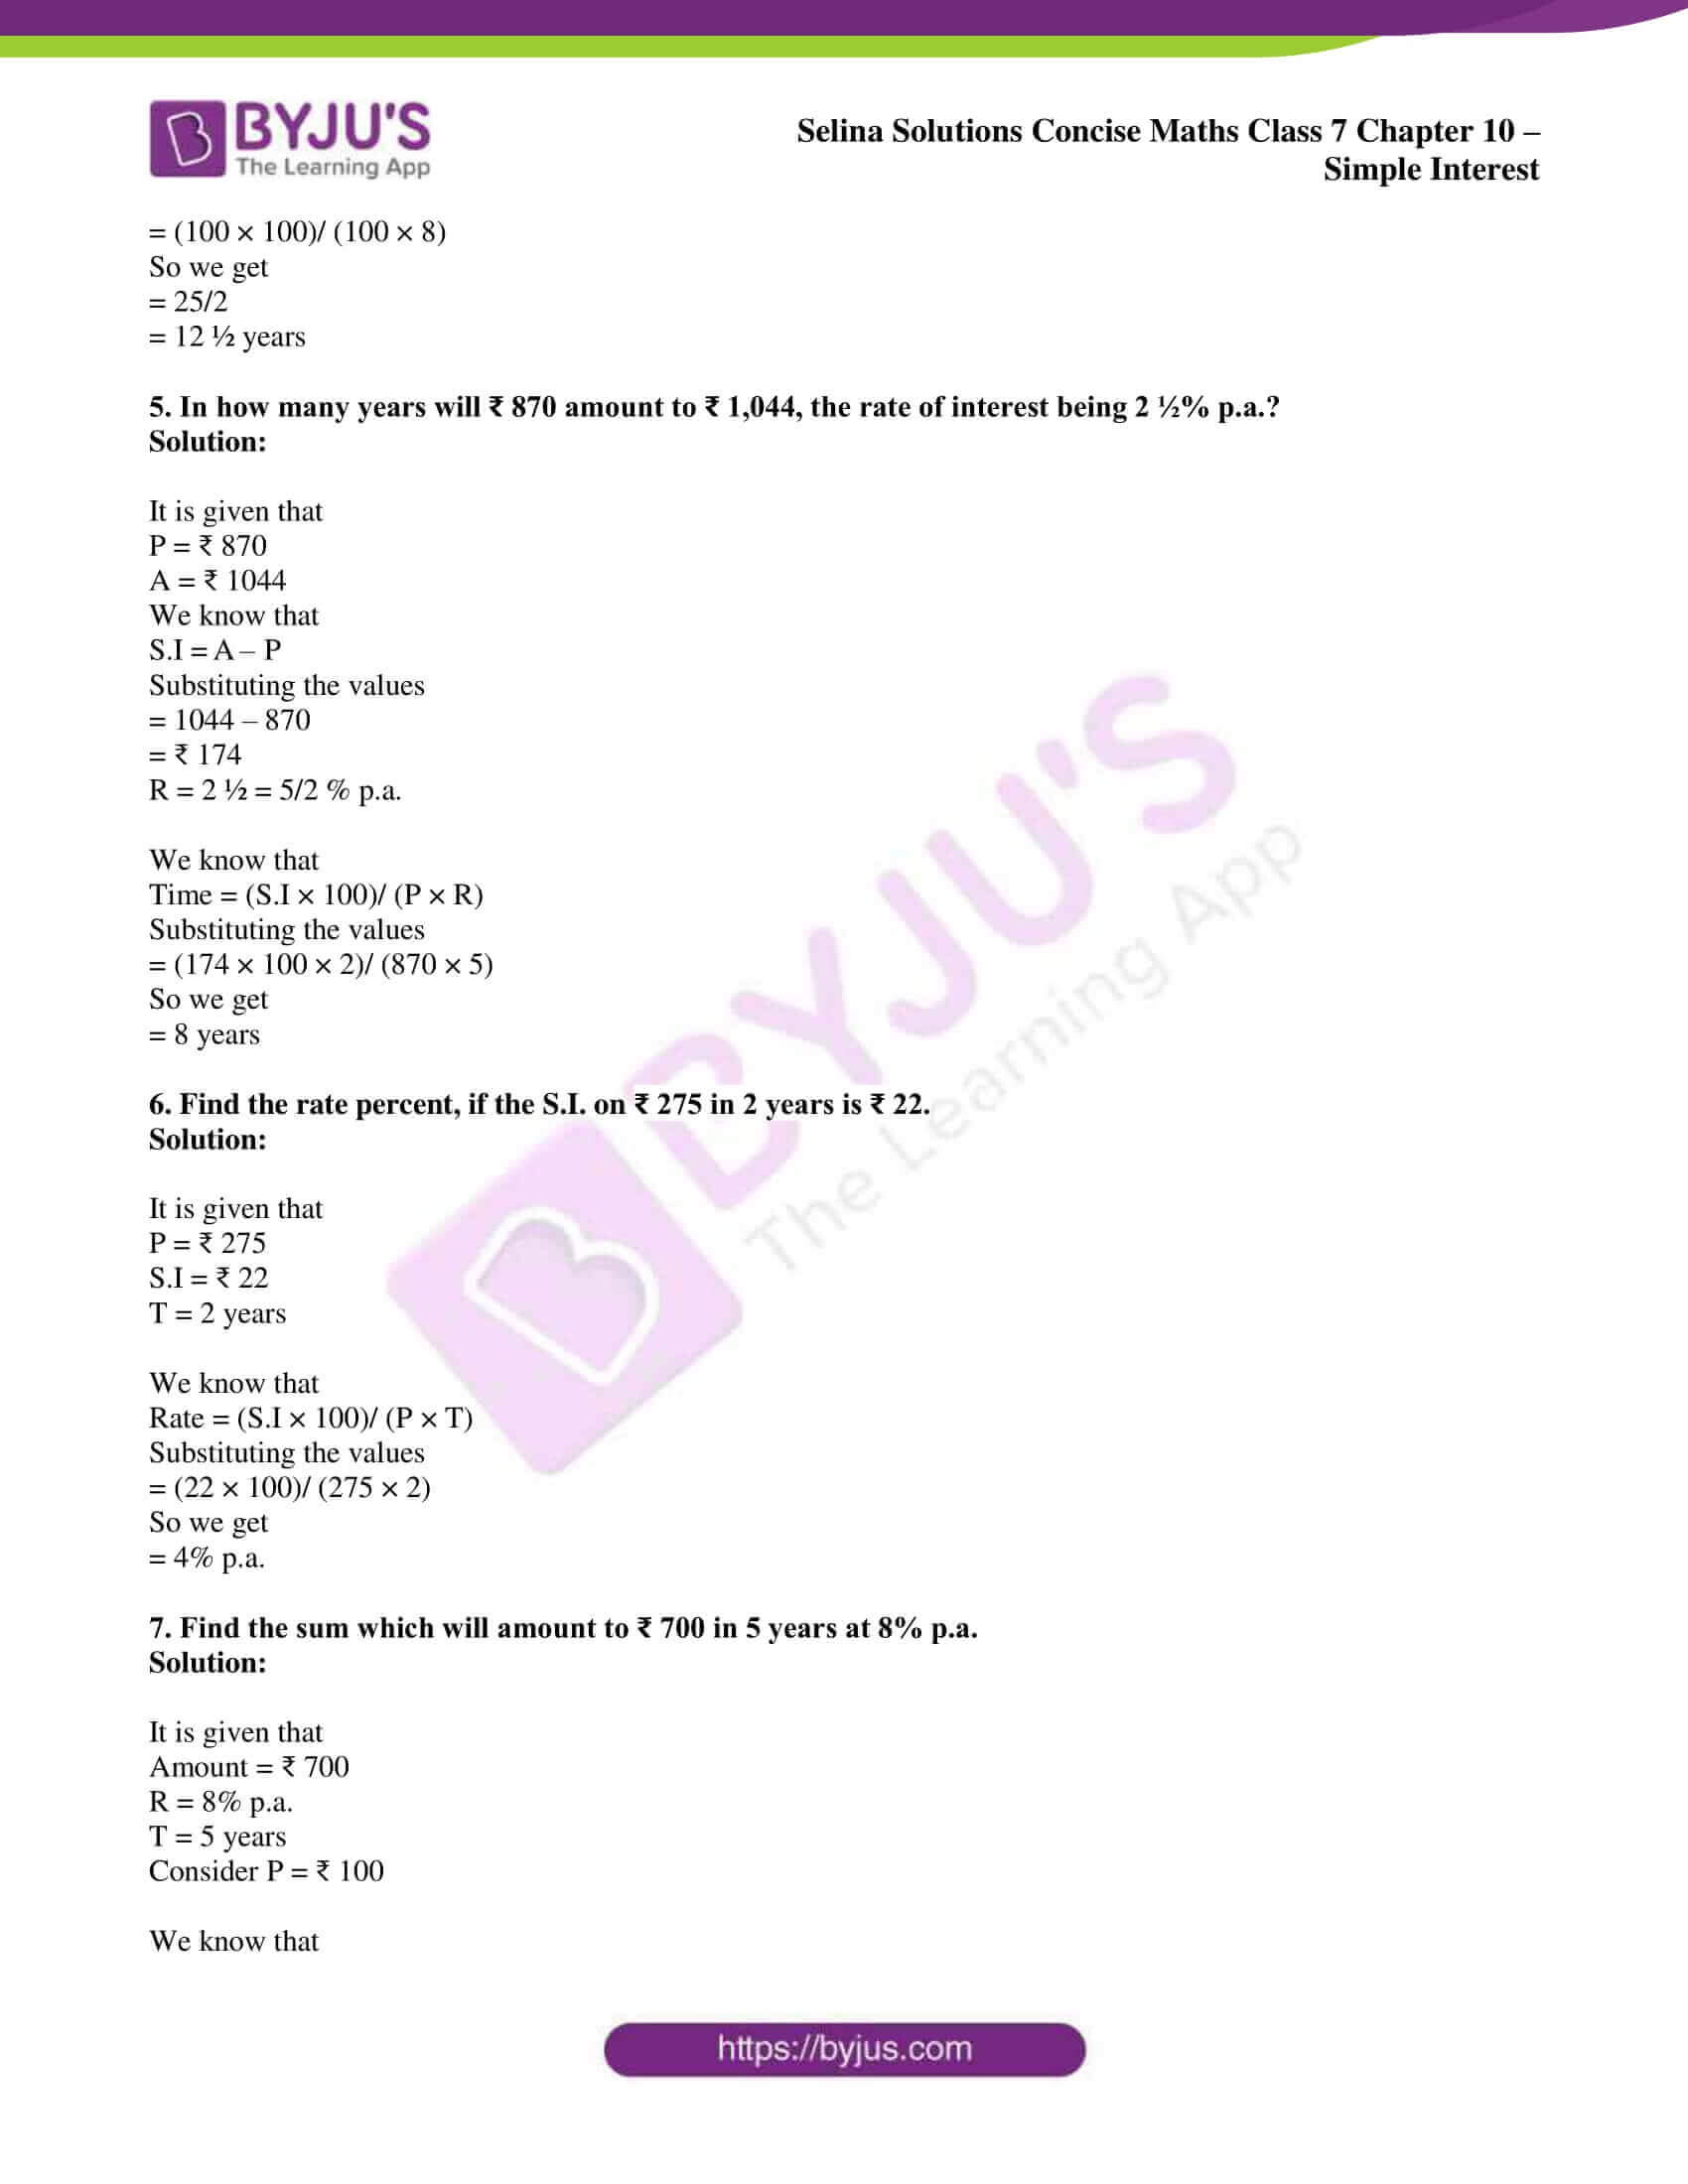 selina sol concise maths class 7 ch10 05